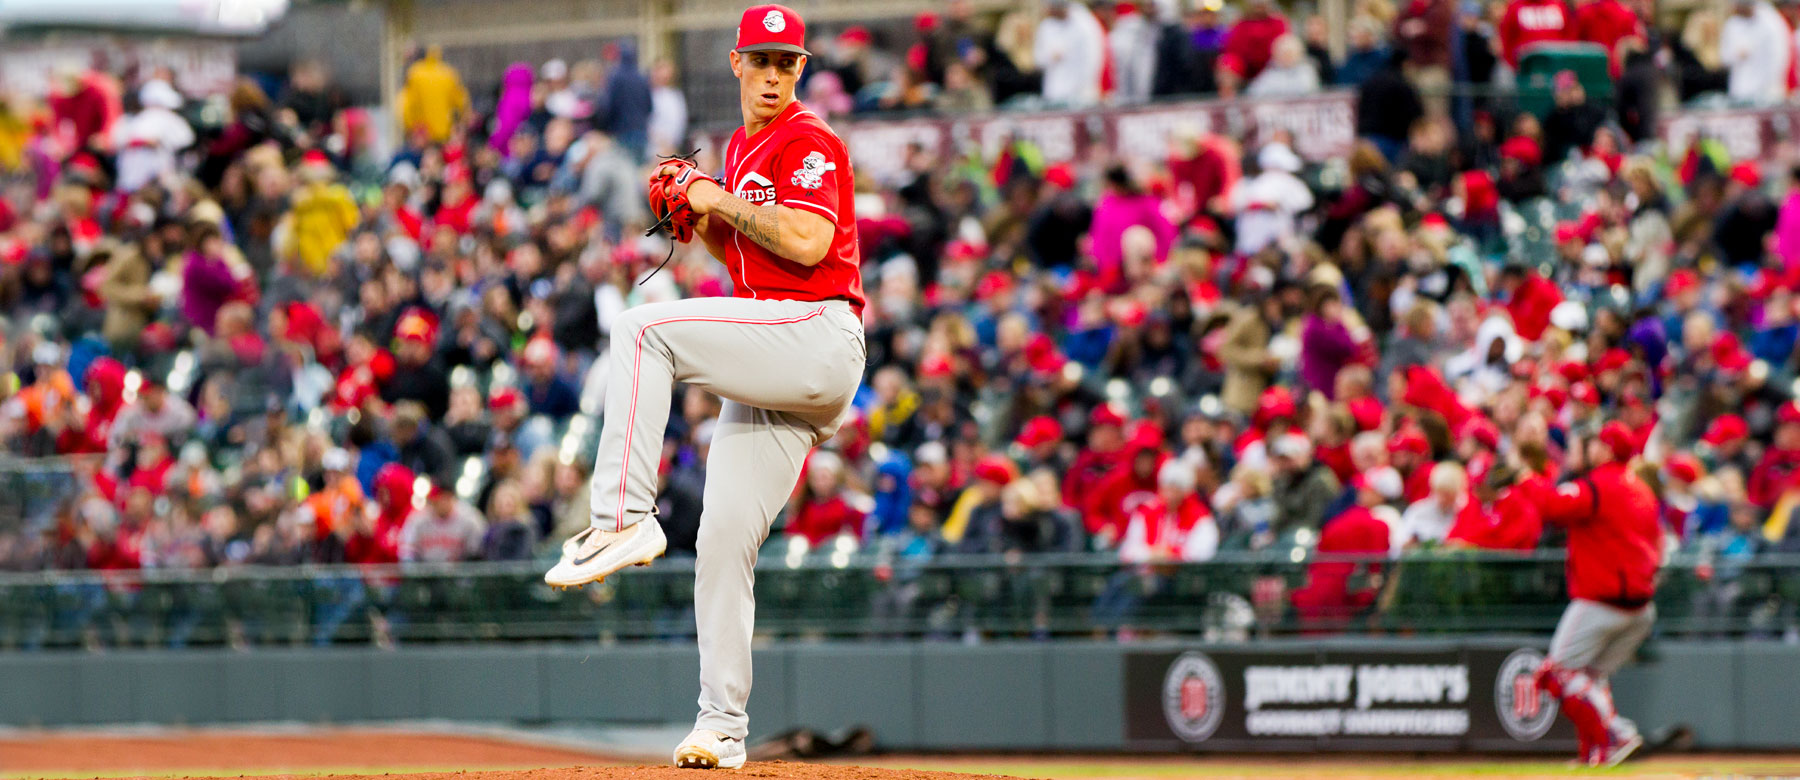 Should the Reds acquire another starter?